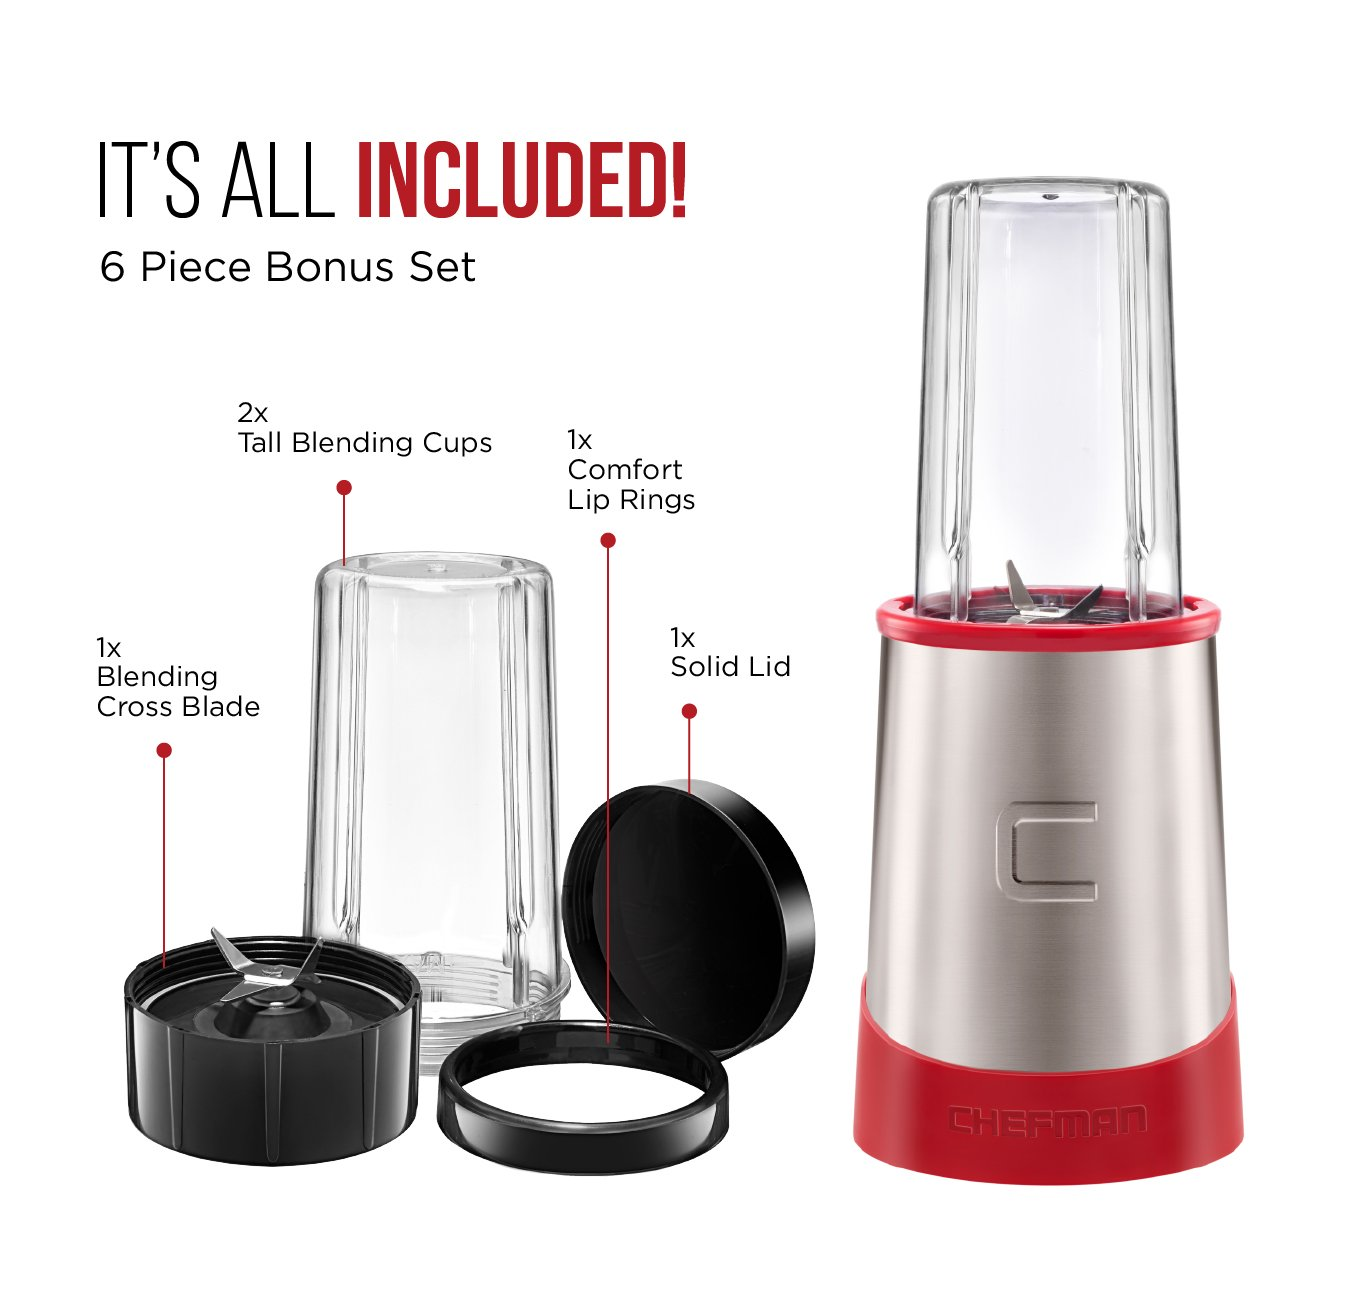 Chefman Ultimate Personal Smoothie Blender, Single Serve, Stainless Steel Blending Blade, 2 Travel Cups with Lids, Solid Storage Cover and Comfort Drinking Rim, 6 Piece - RJ28-6-SS-Red by Chefman (Image #4)